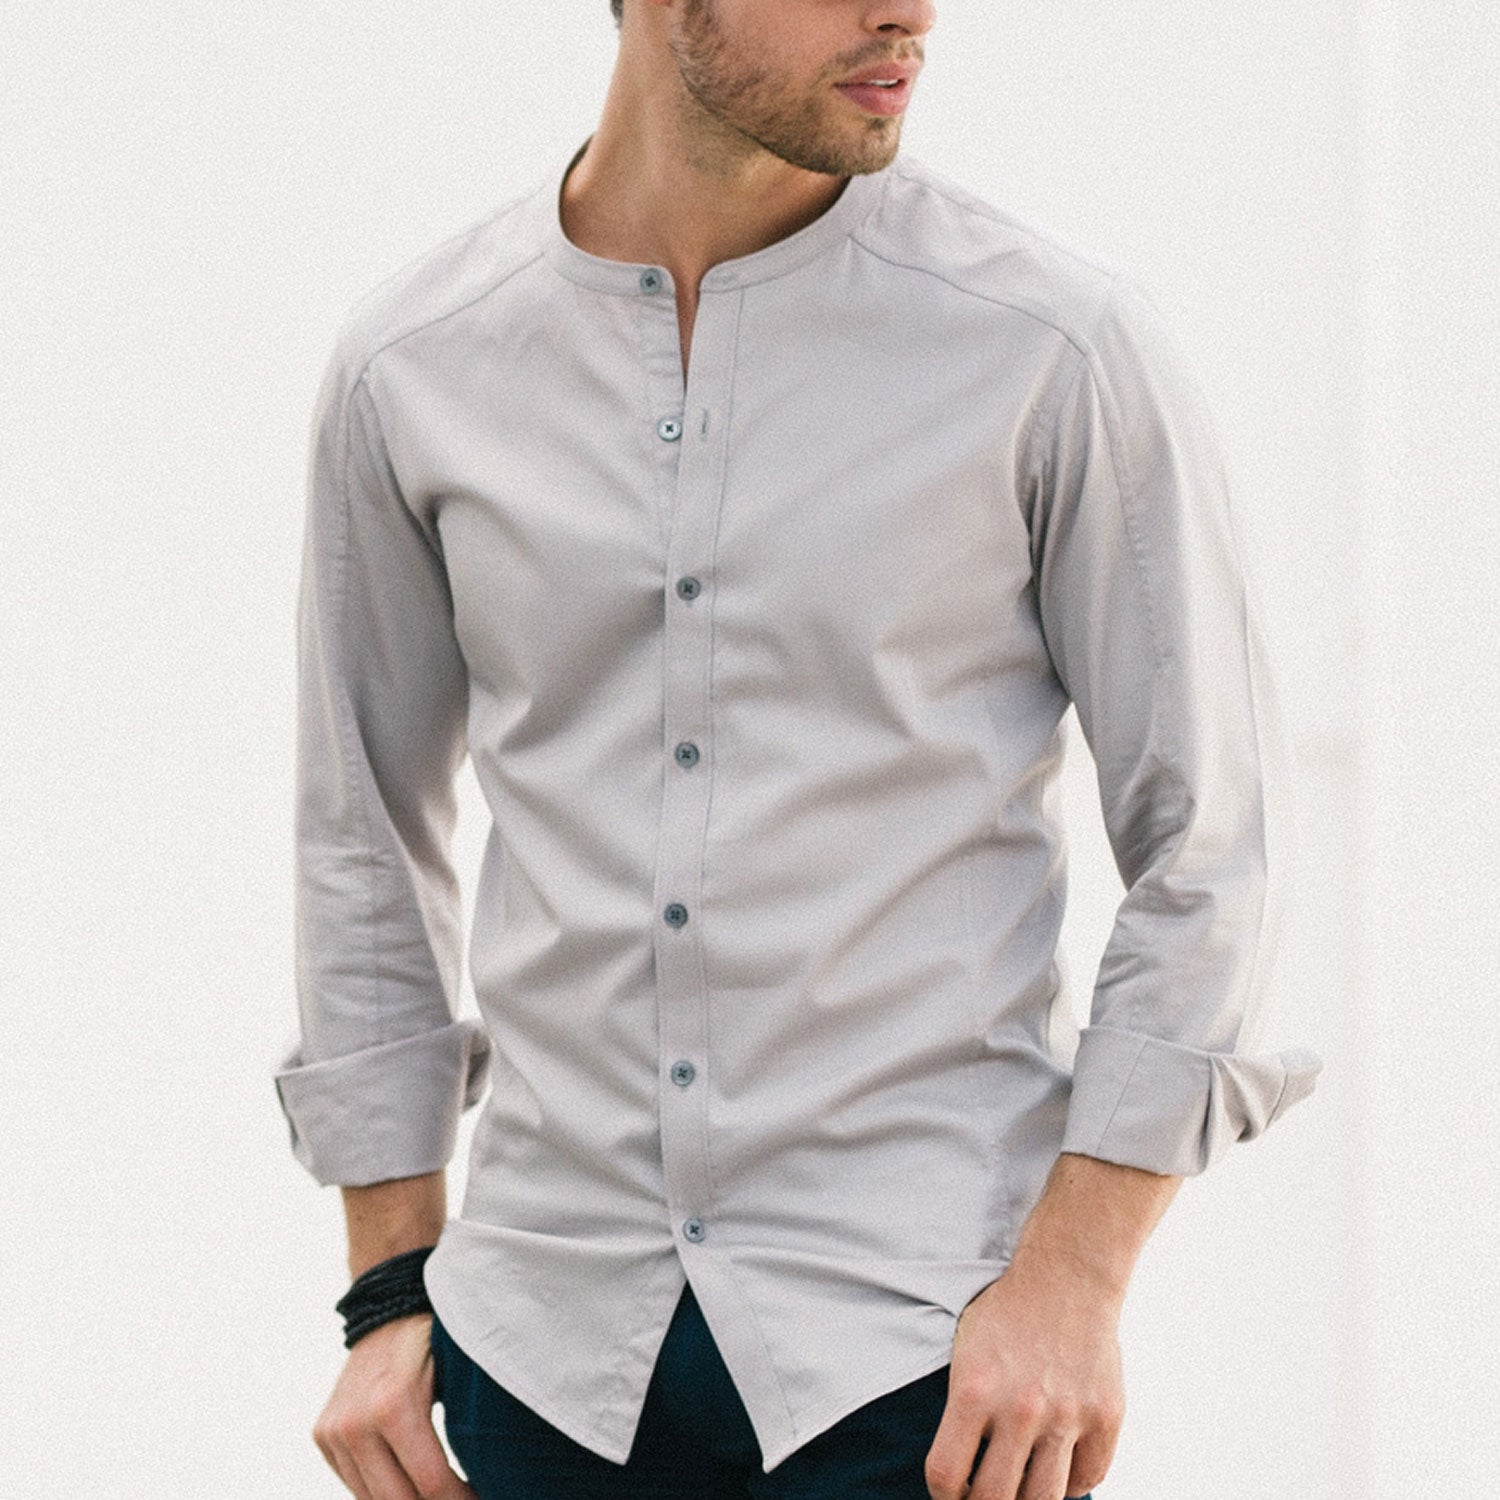 Collarless Shirt Image